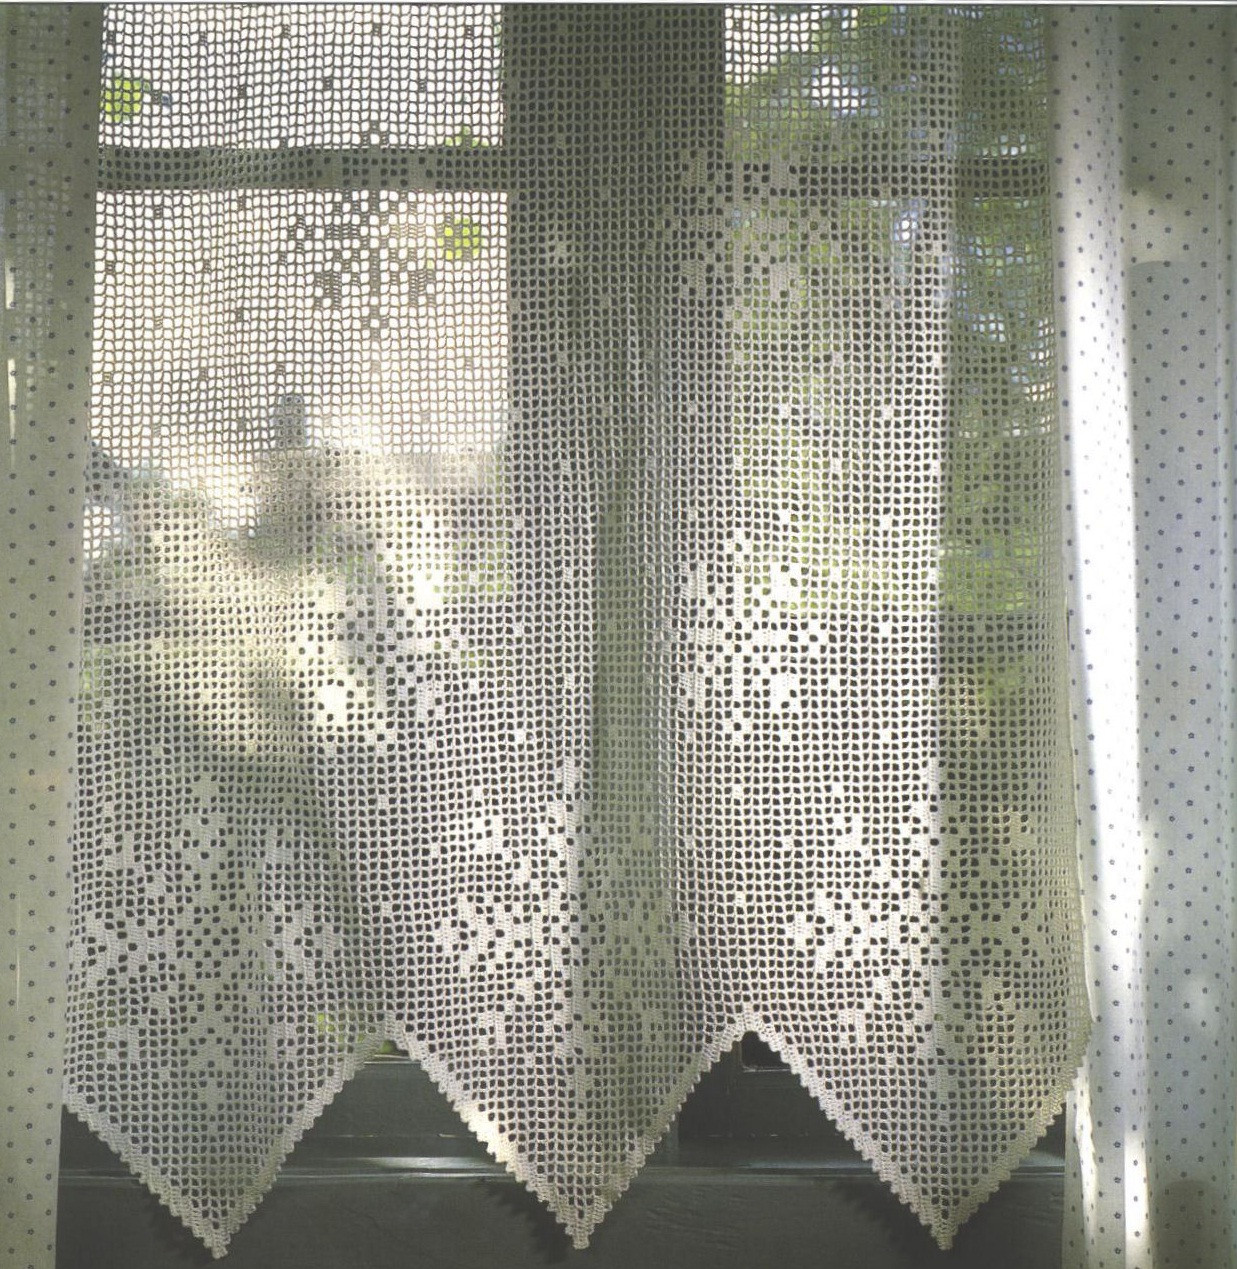 Best Of Needle Works butterfly Filet Crochet Curtains Crochet Curtain Patterns Of Contemporary 49 Ideas Crochet Curtain Patterns